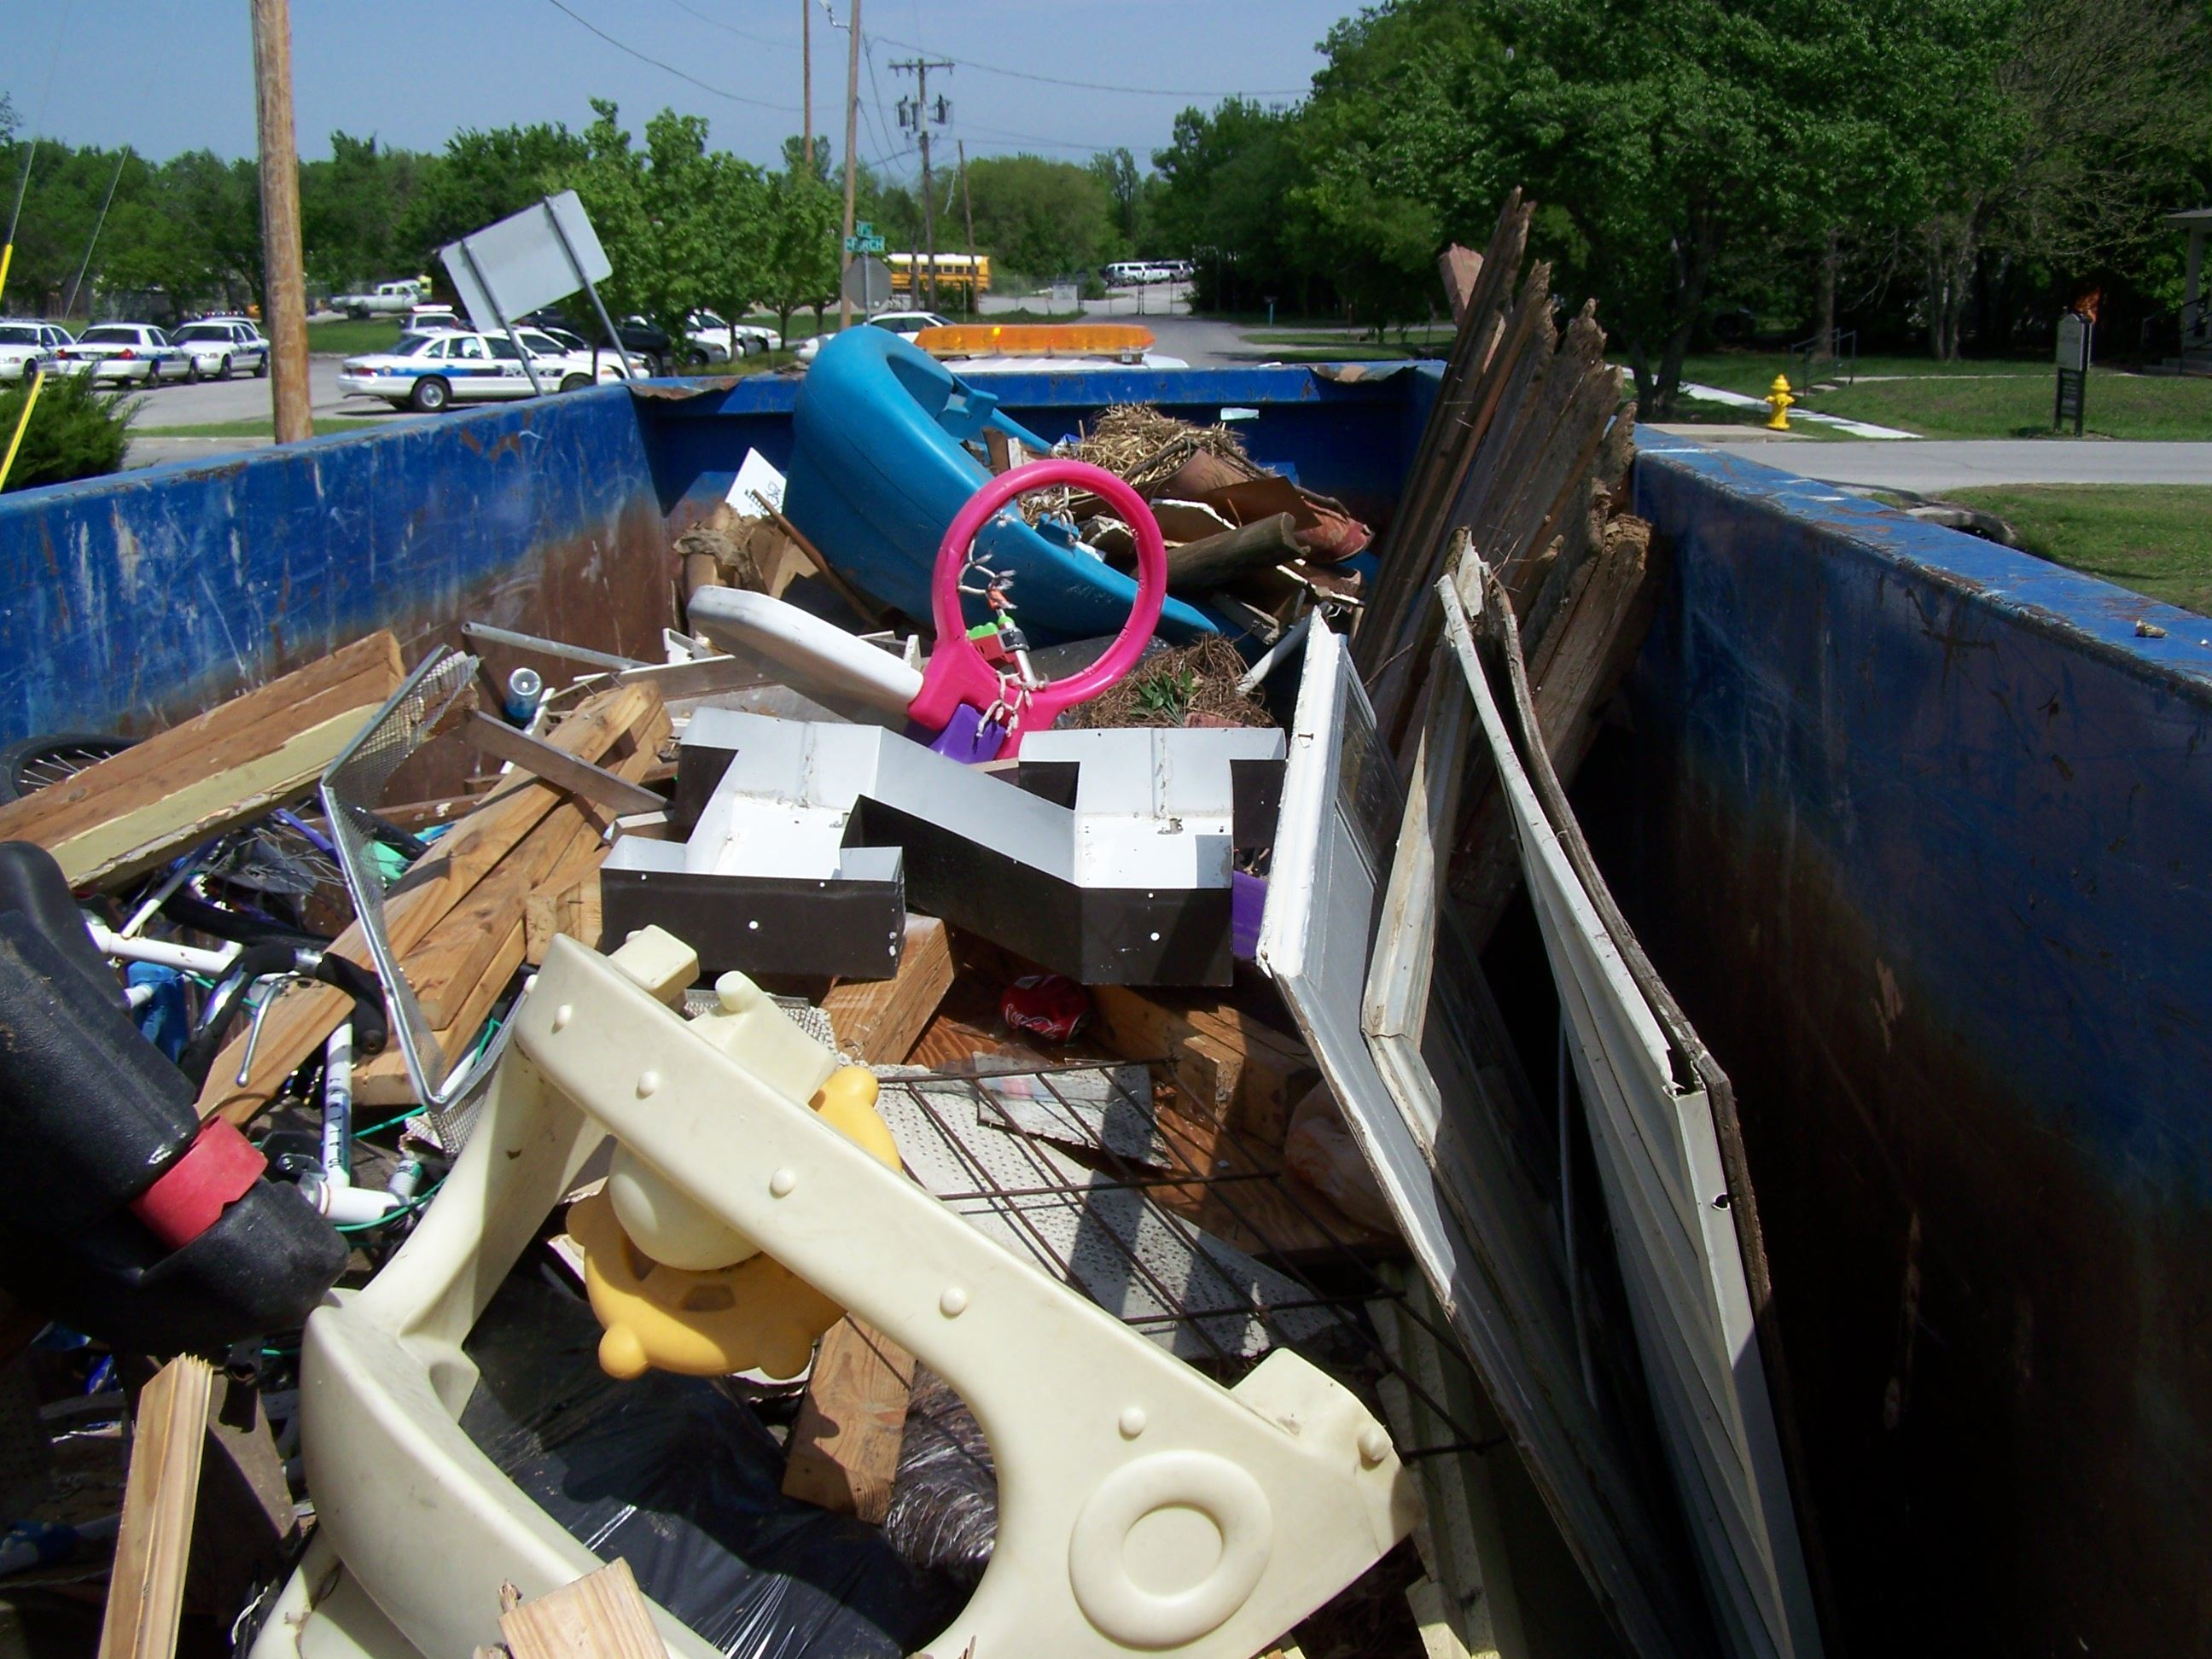 Dumpster full of debris from residents on CARES Day of Service